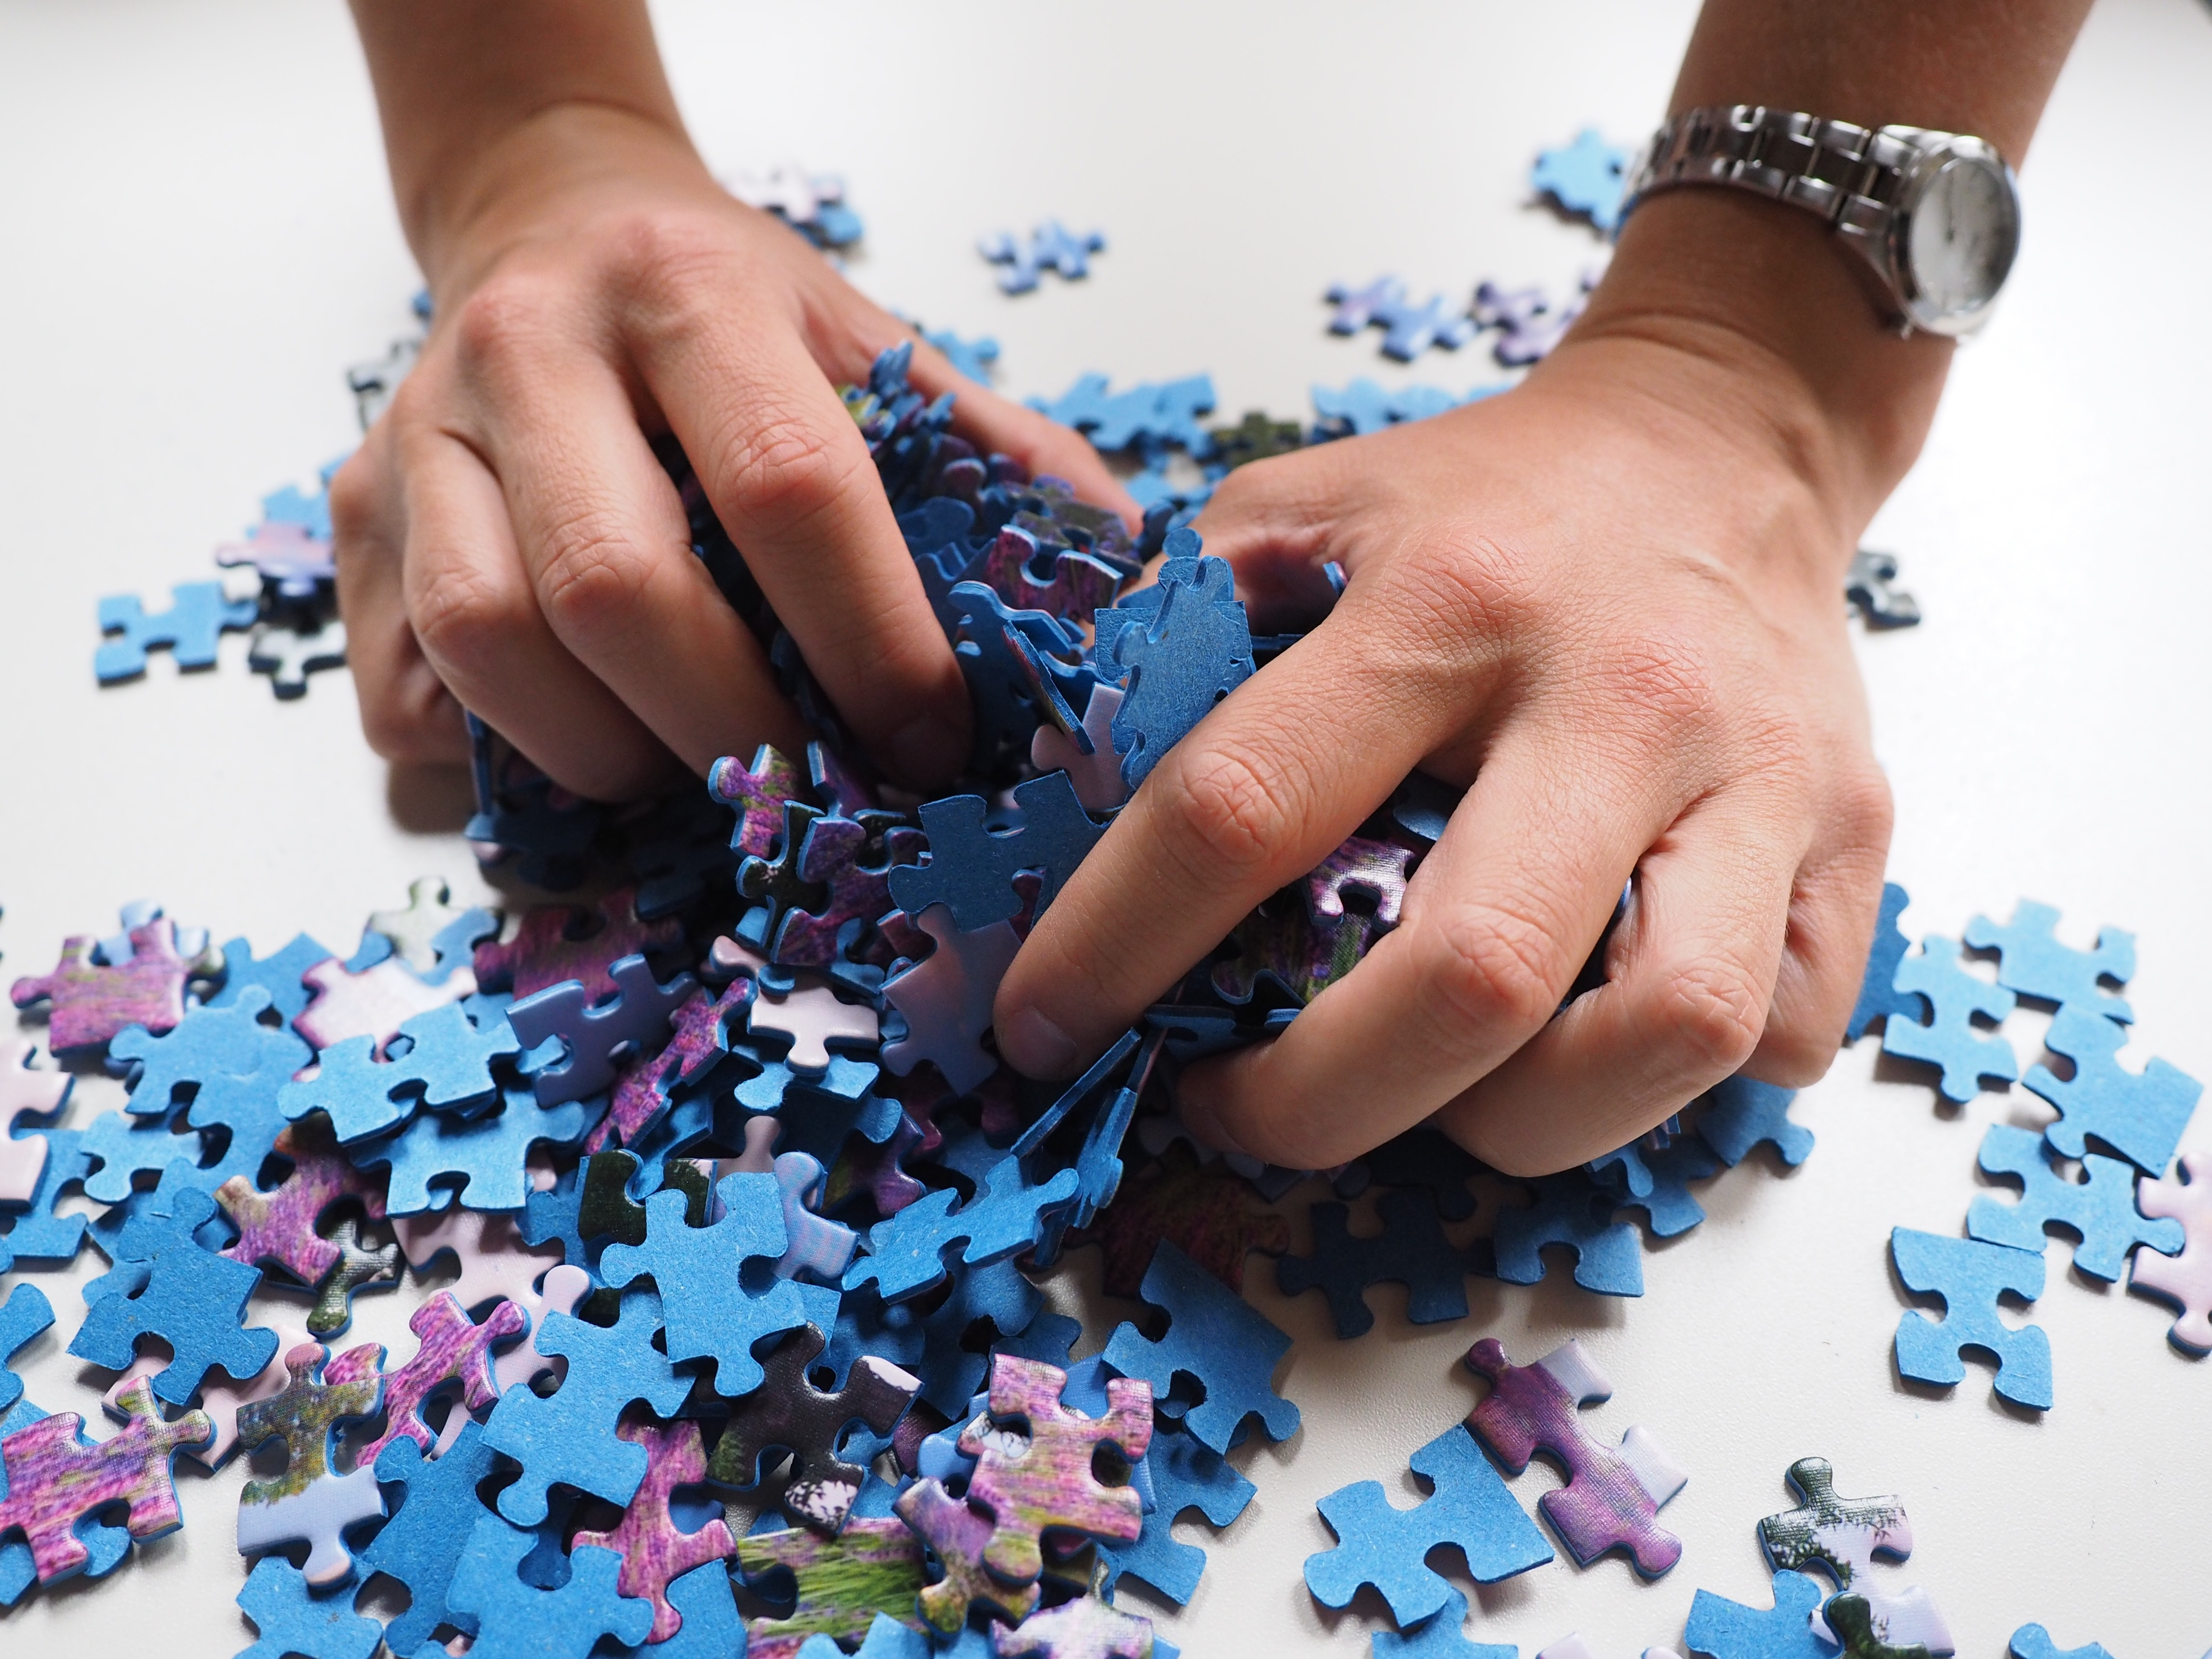 pieces-of-the-puzzle-592798.jpg